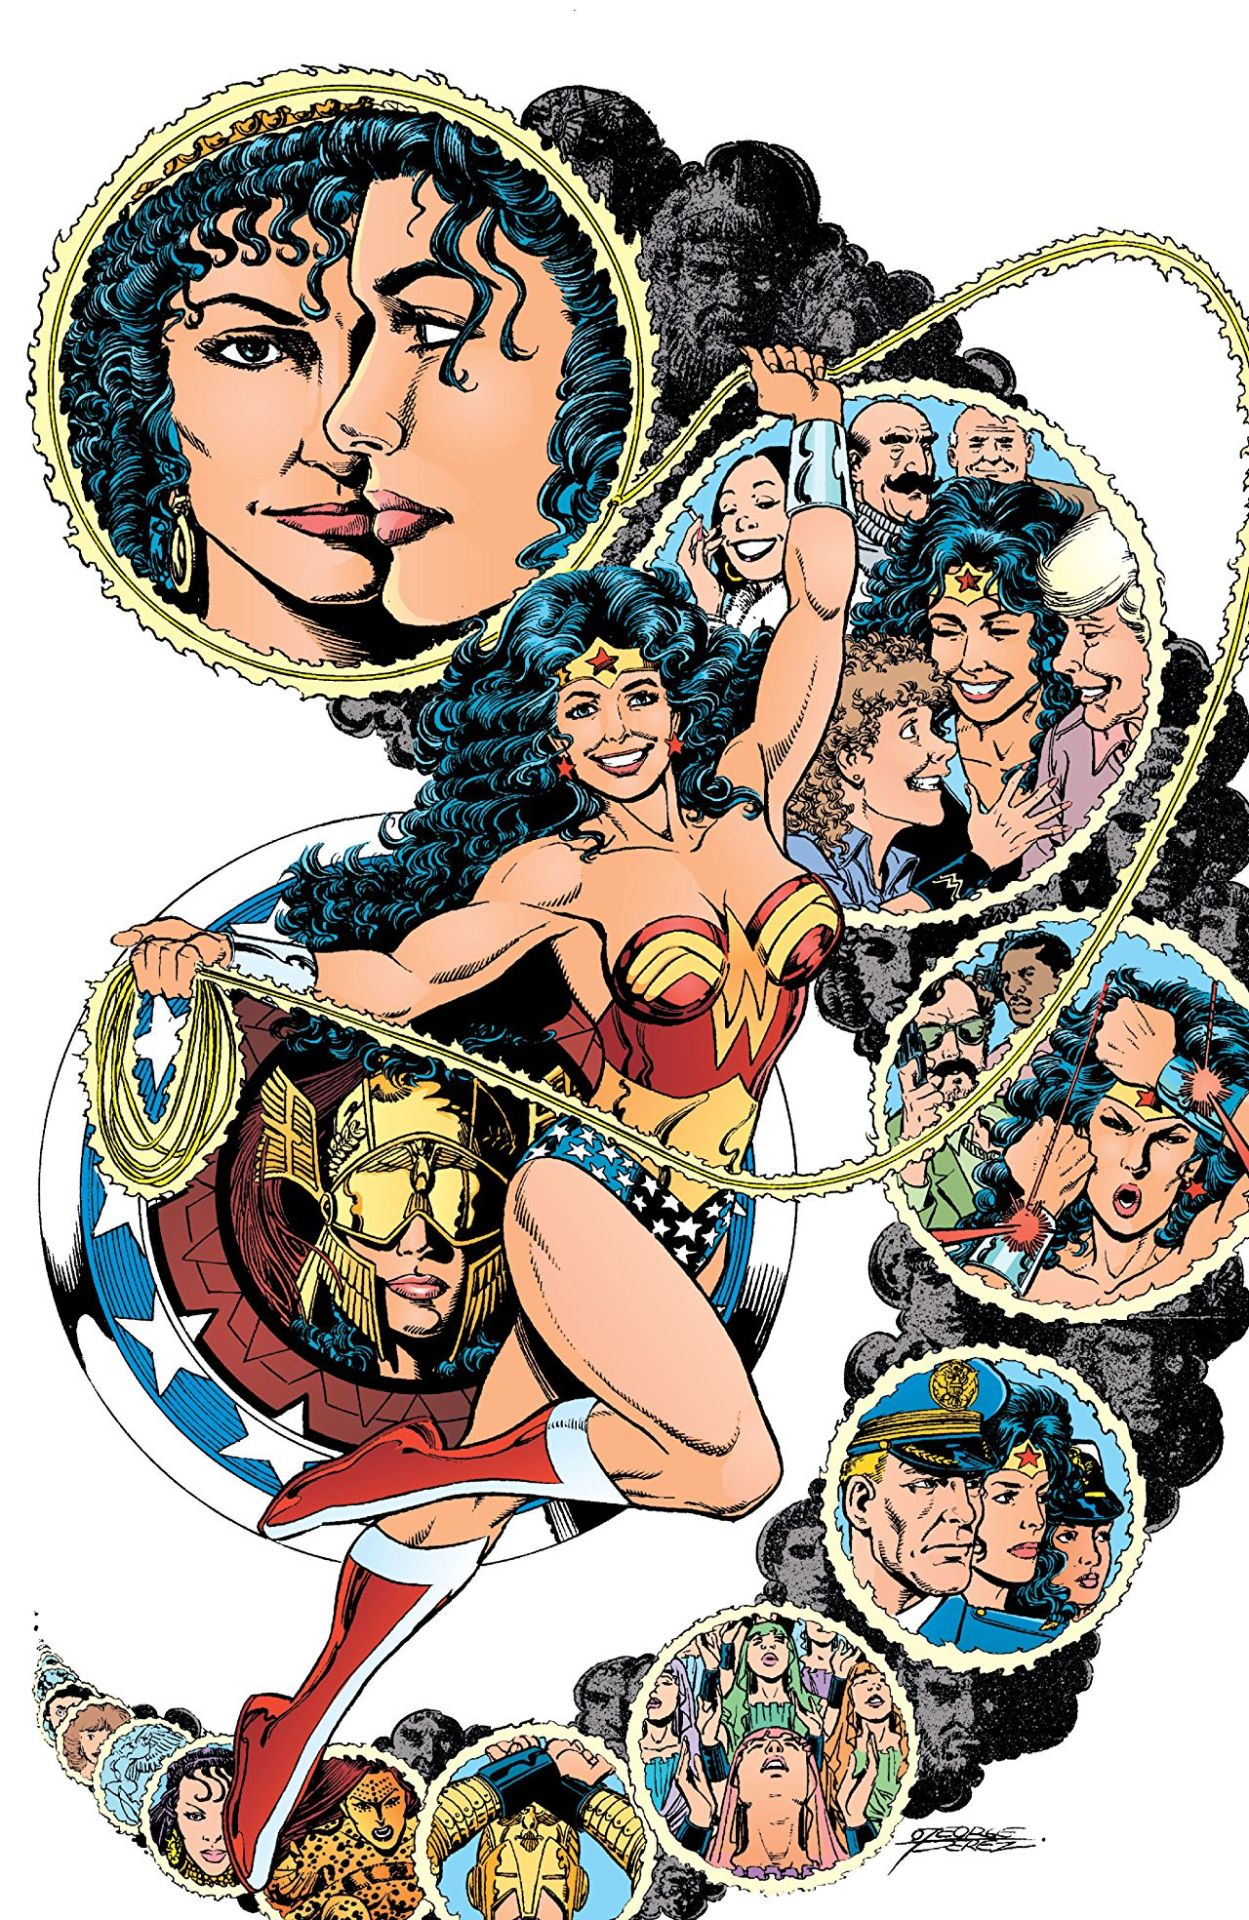 Pin-up by George Perez from the Wonder Woman Gallery, 1996